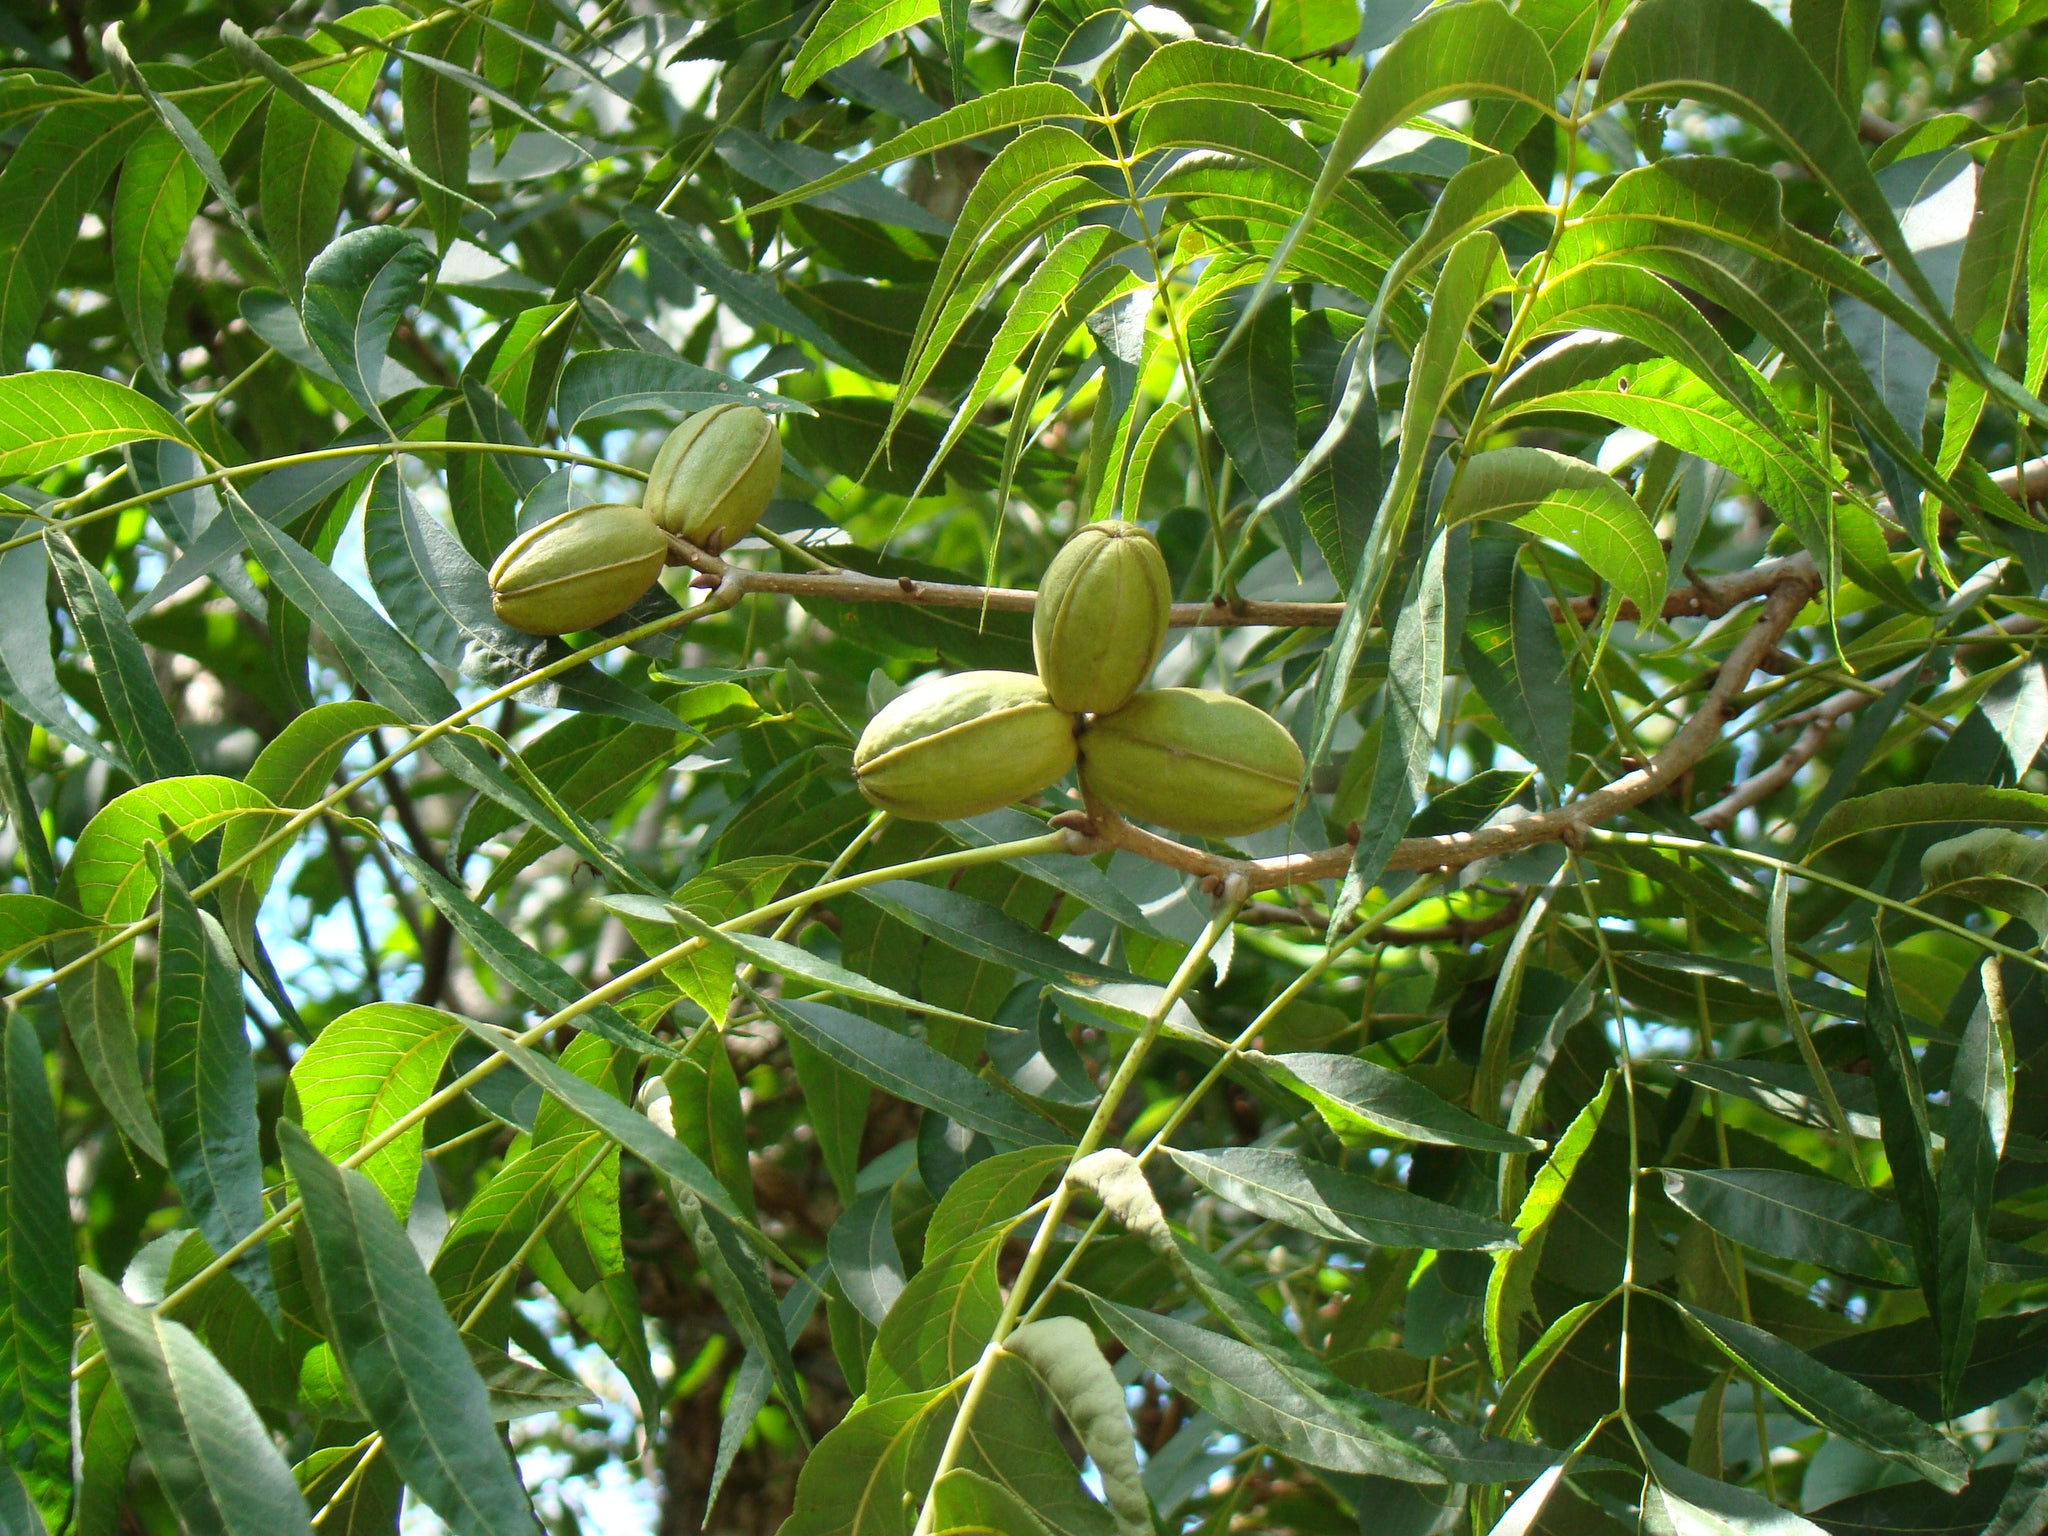 Should Green Pecans be Picked Up?